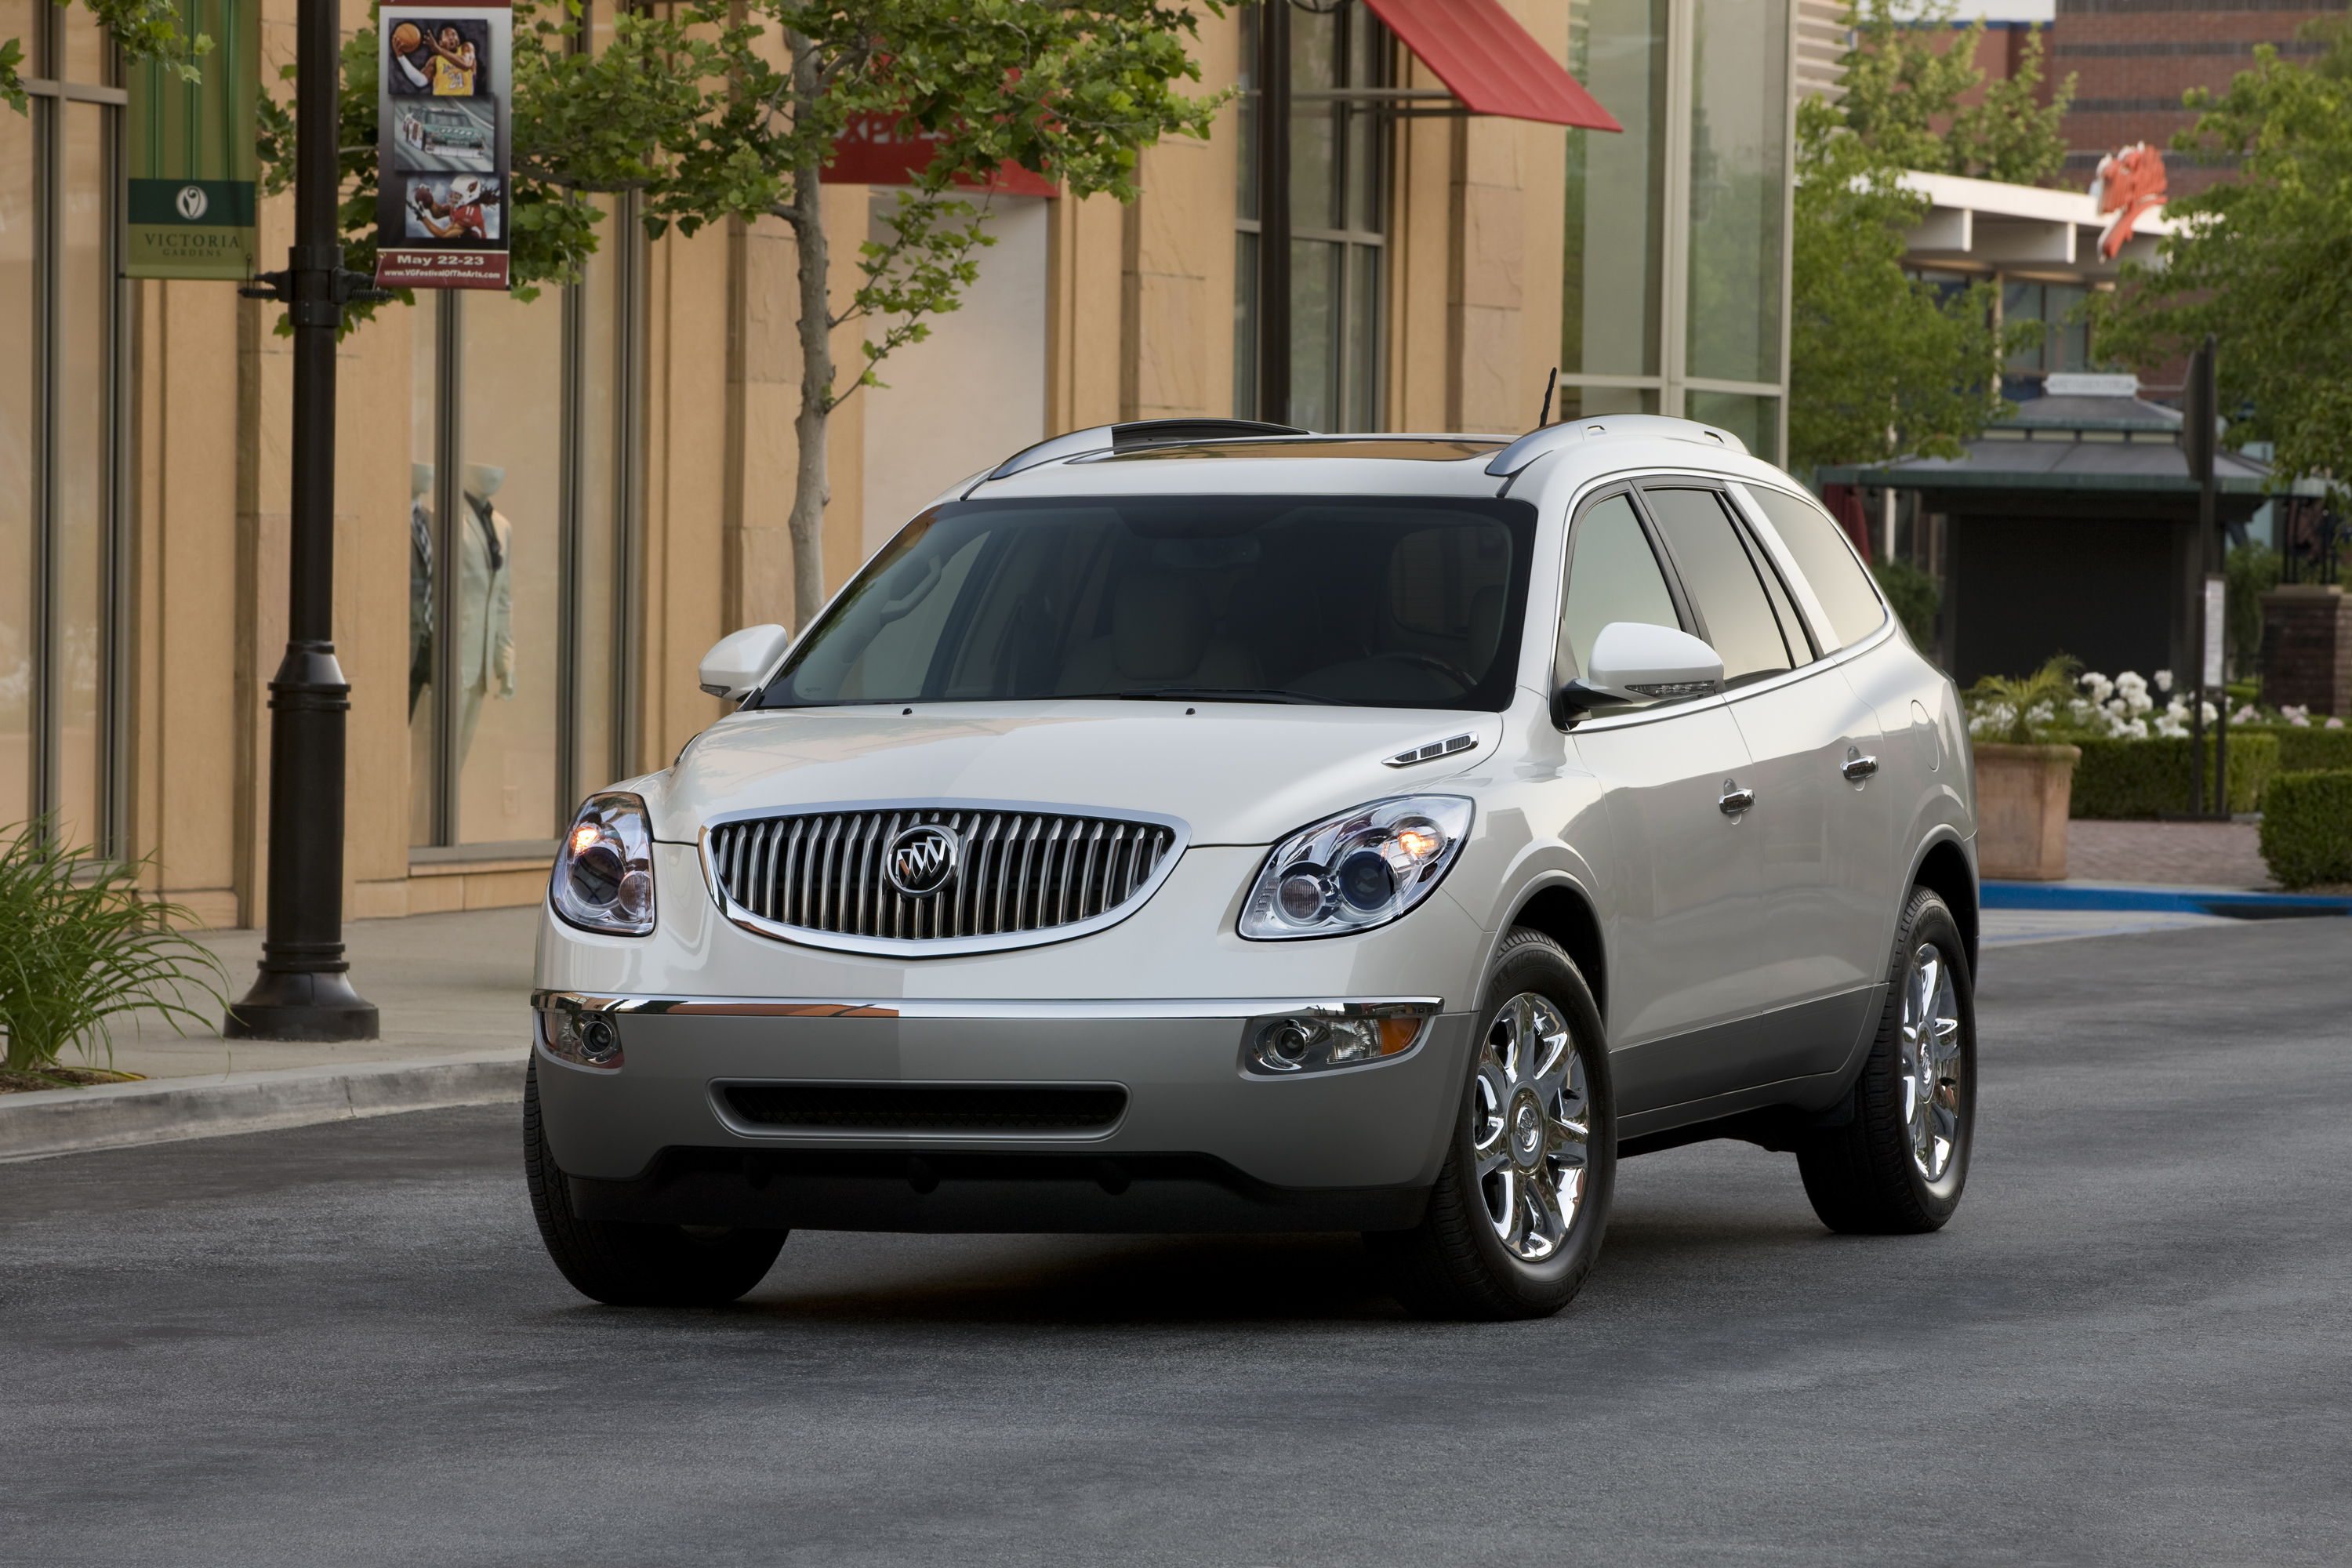 Buick LaCrosse: Dolly Towing from the Front (Front-Wheel Drive)